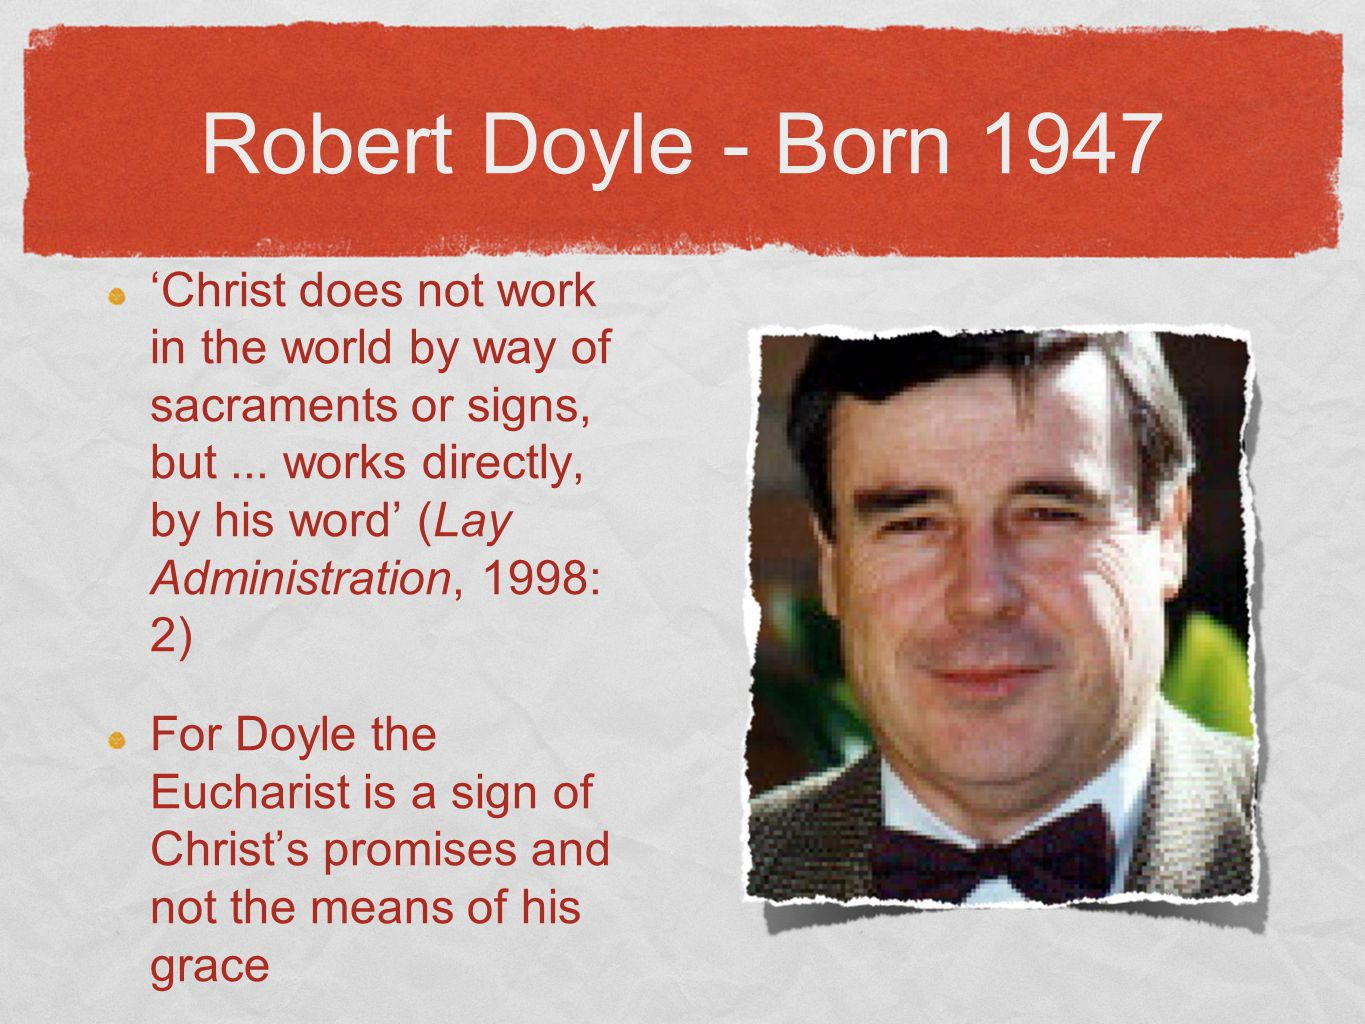 Robert Doyle - Born 1947 'Christ does not work in the world by way of sacraments or signs, but...